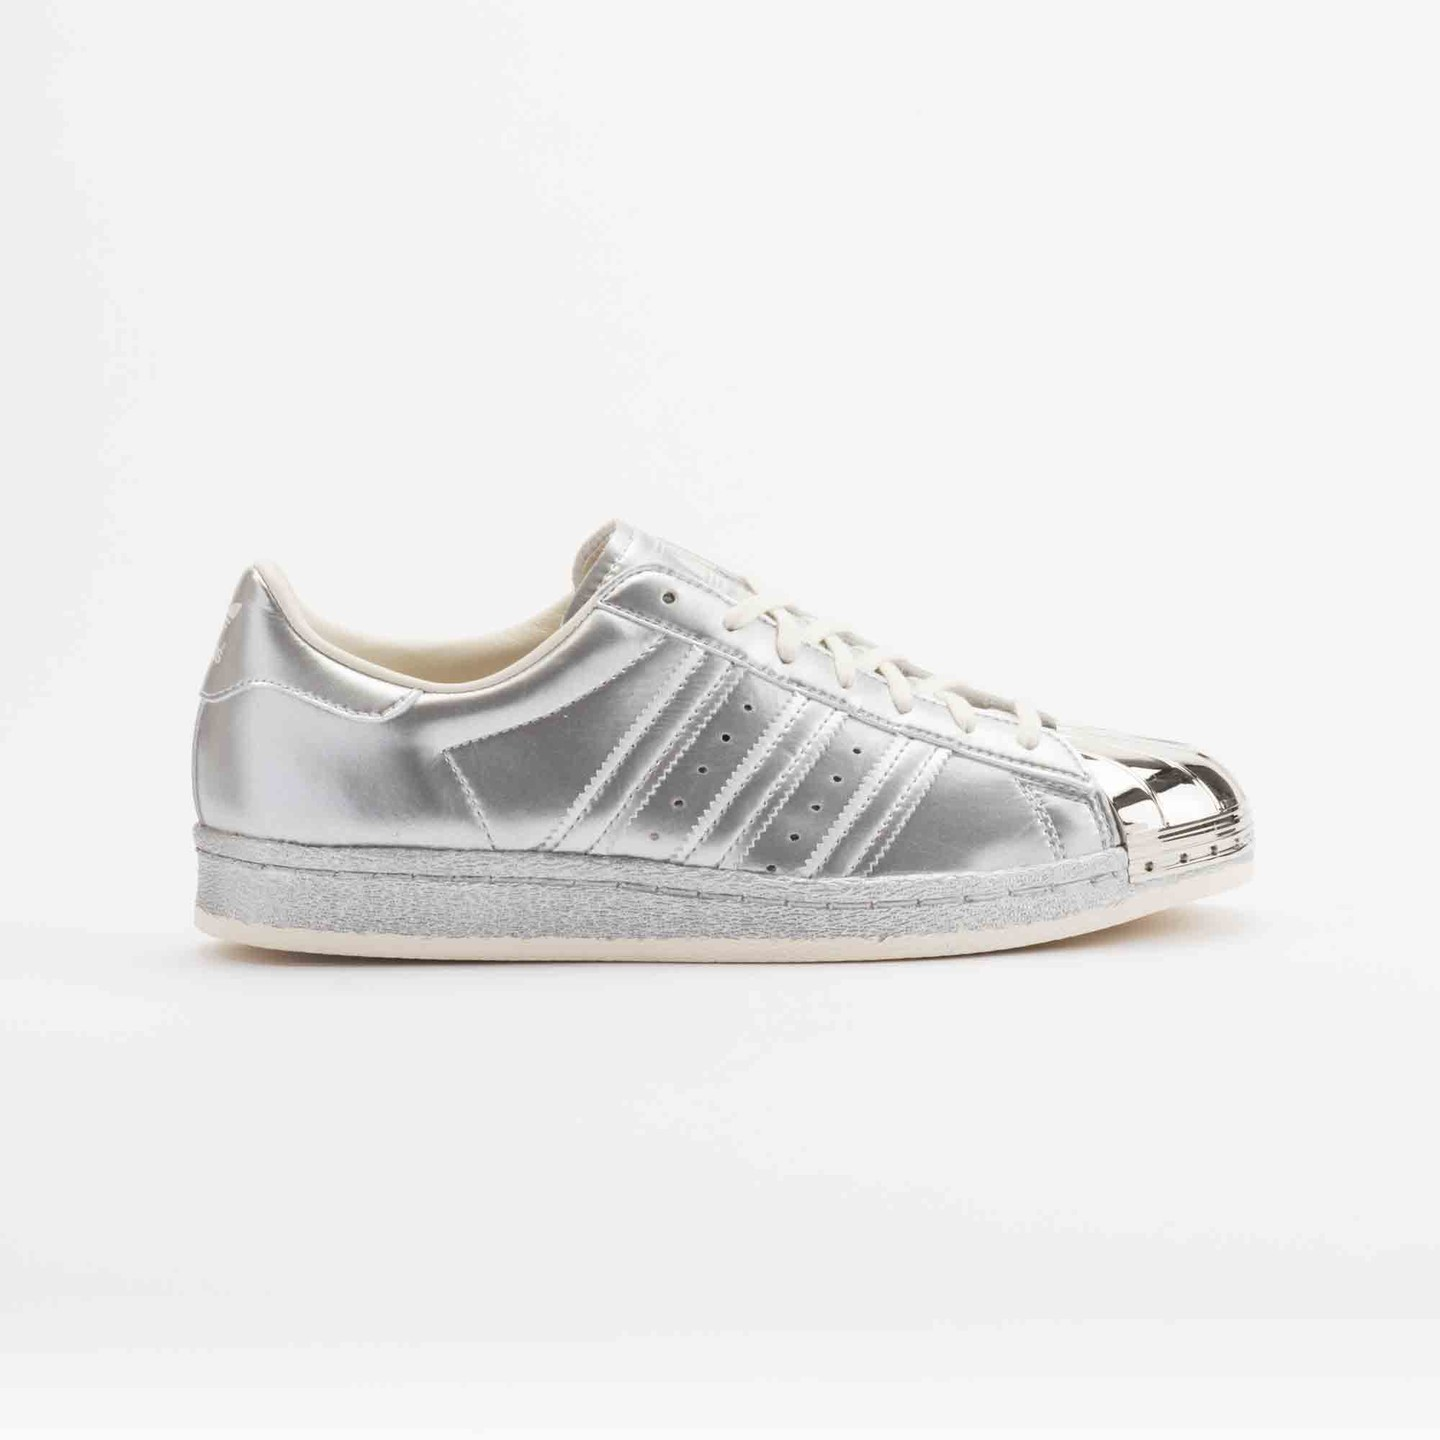 Adidas Superstar 80s Metallic Pack Silver Metallic S82741-40.66